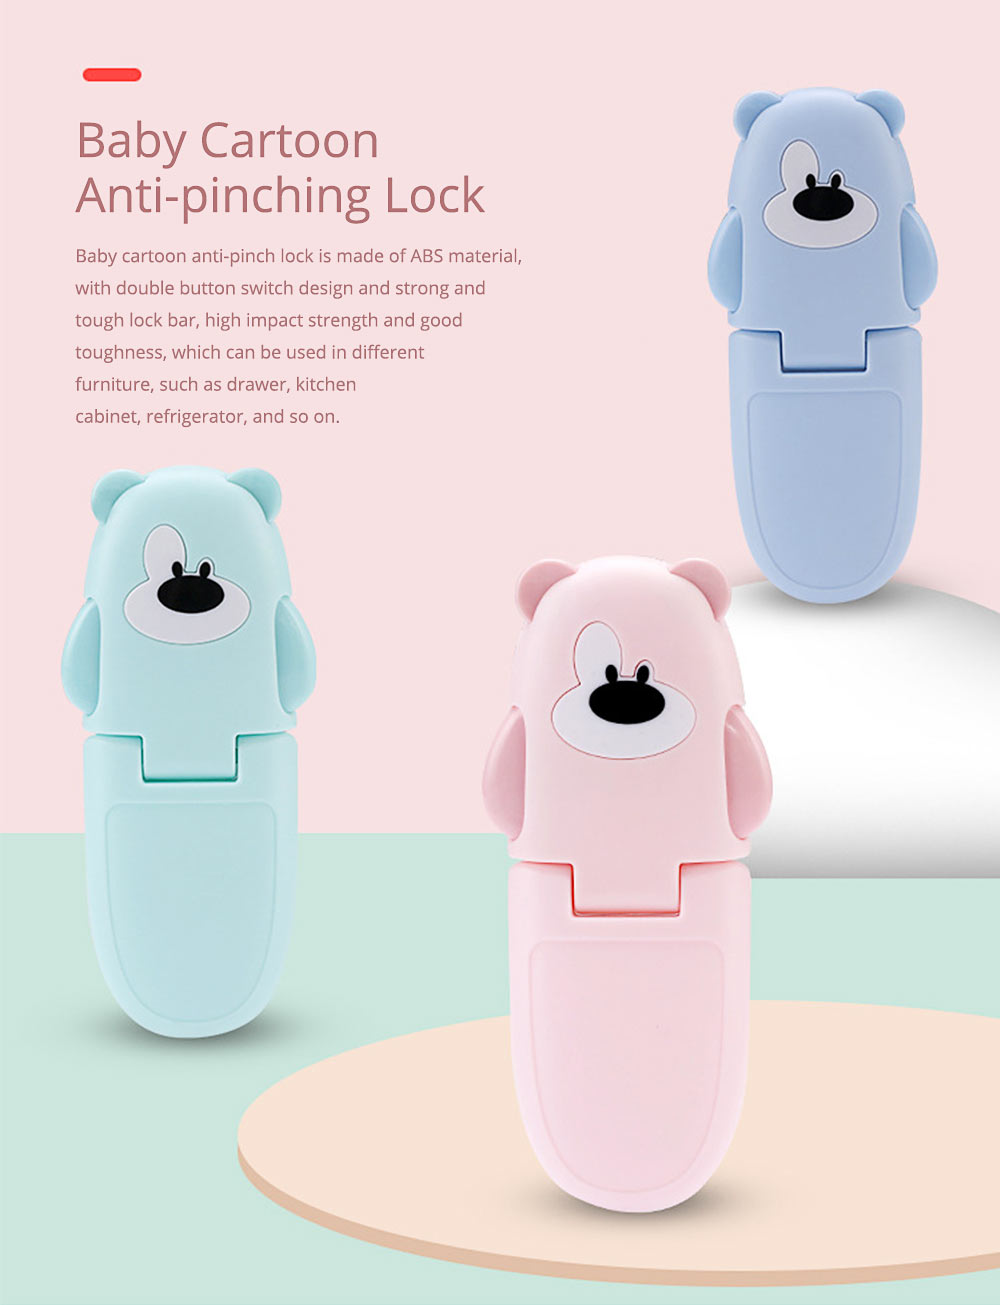 Baby Cartoon Anti-pinching Lock, Multifunctional Safety Lock with Double Button Switch Design 0